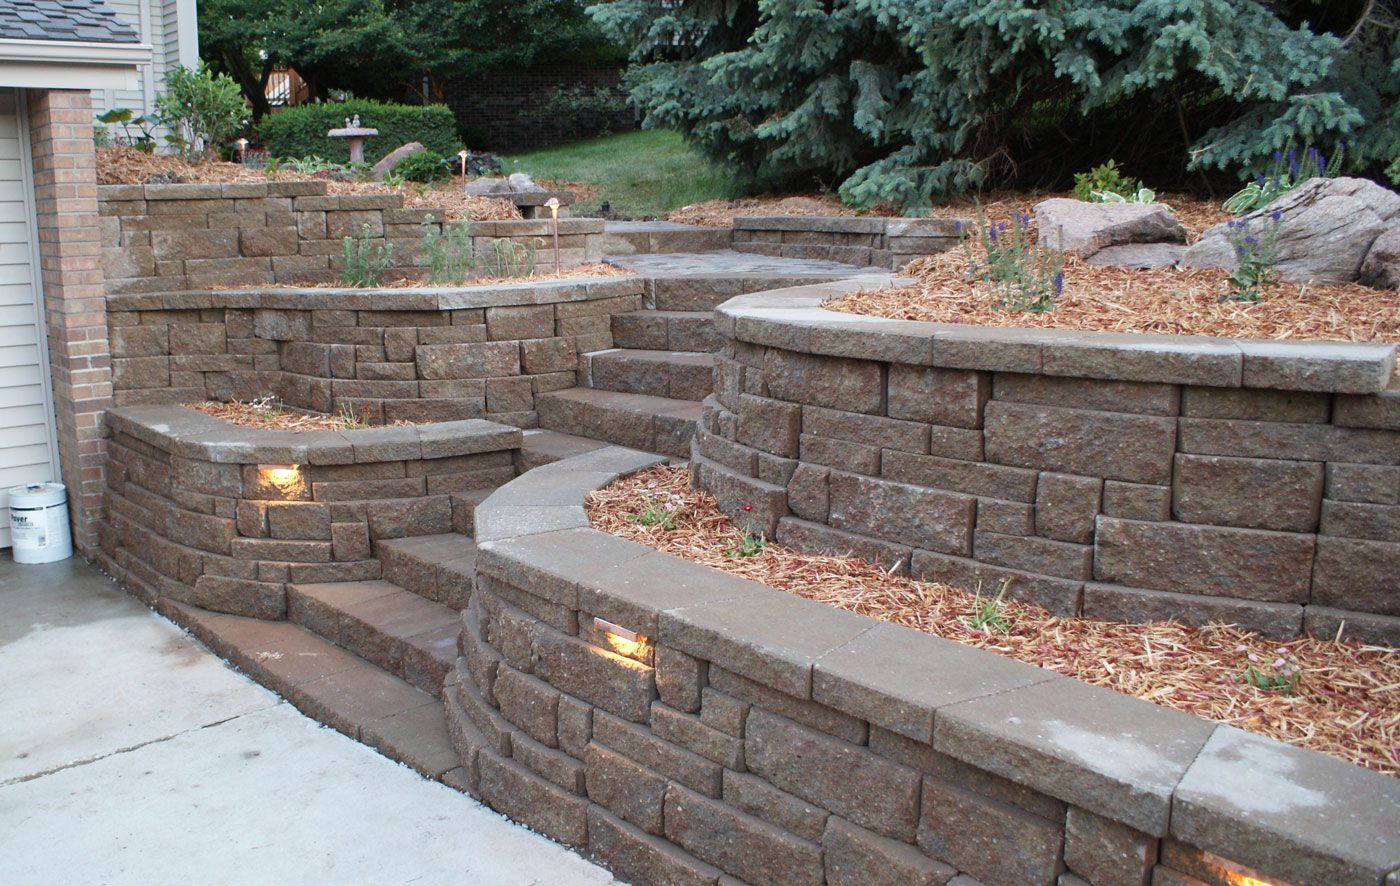 Retaining Walls Decor With Simple Lightning For Innovative And Interesting Retaining Walls Ins Landscaping Retaining Walls Landscape Design Outdoor Landscaping